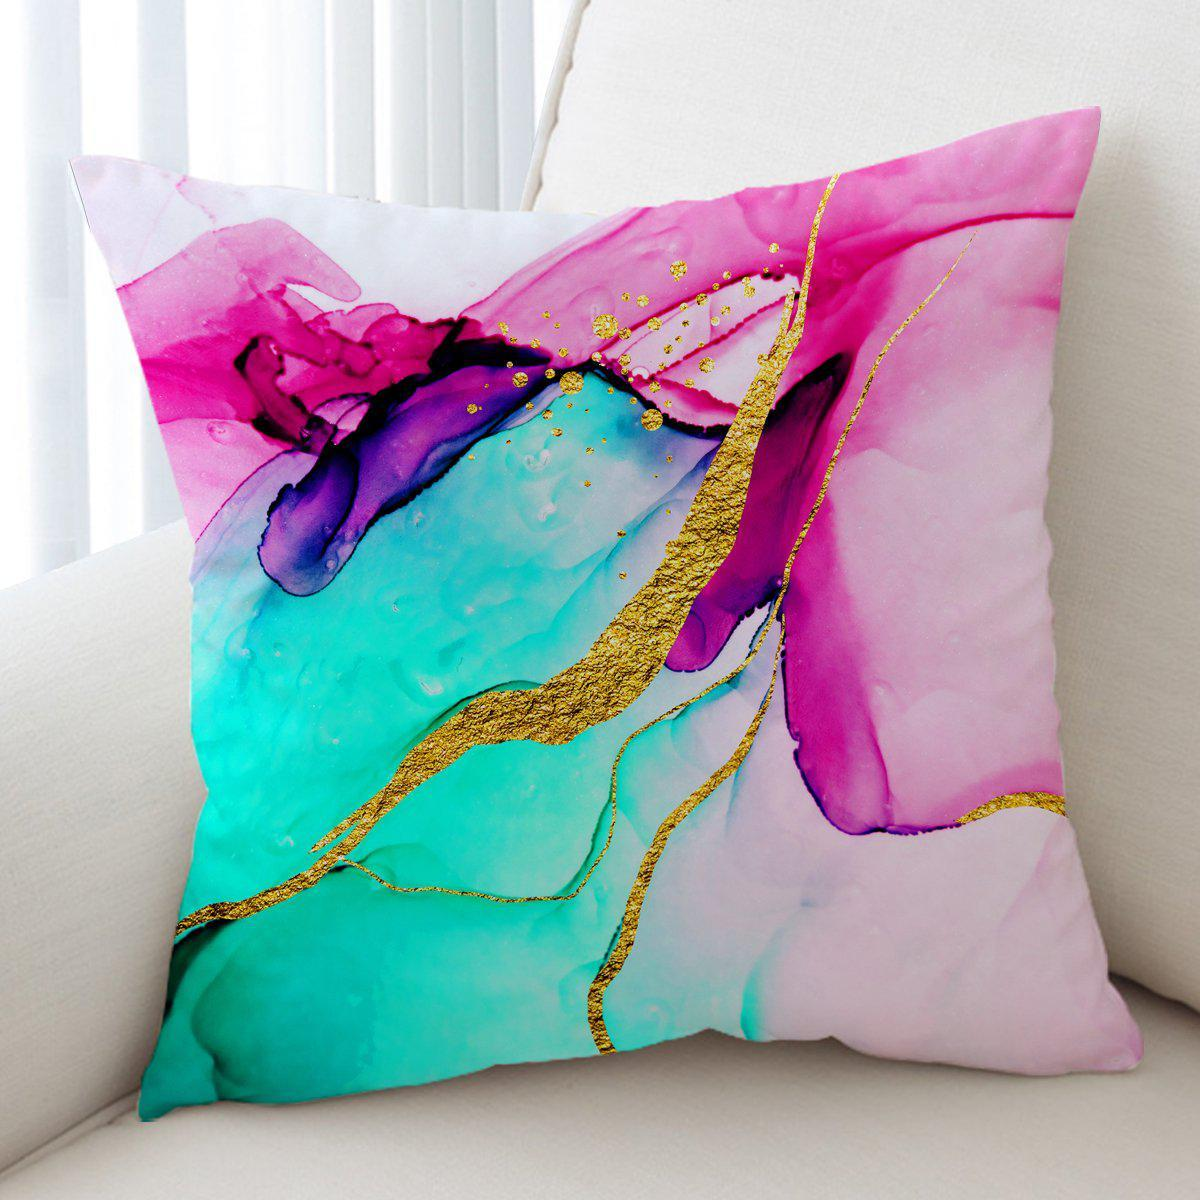 Anse Source D'Argent Pillow Cover-Coastal Passion